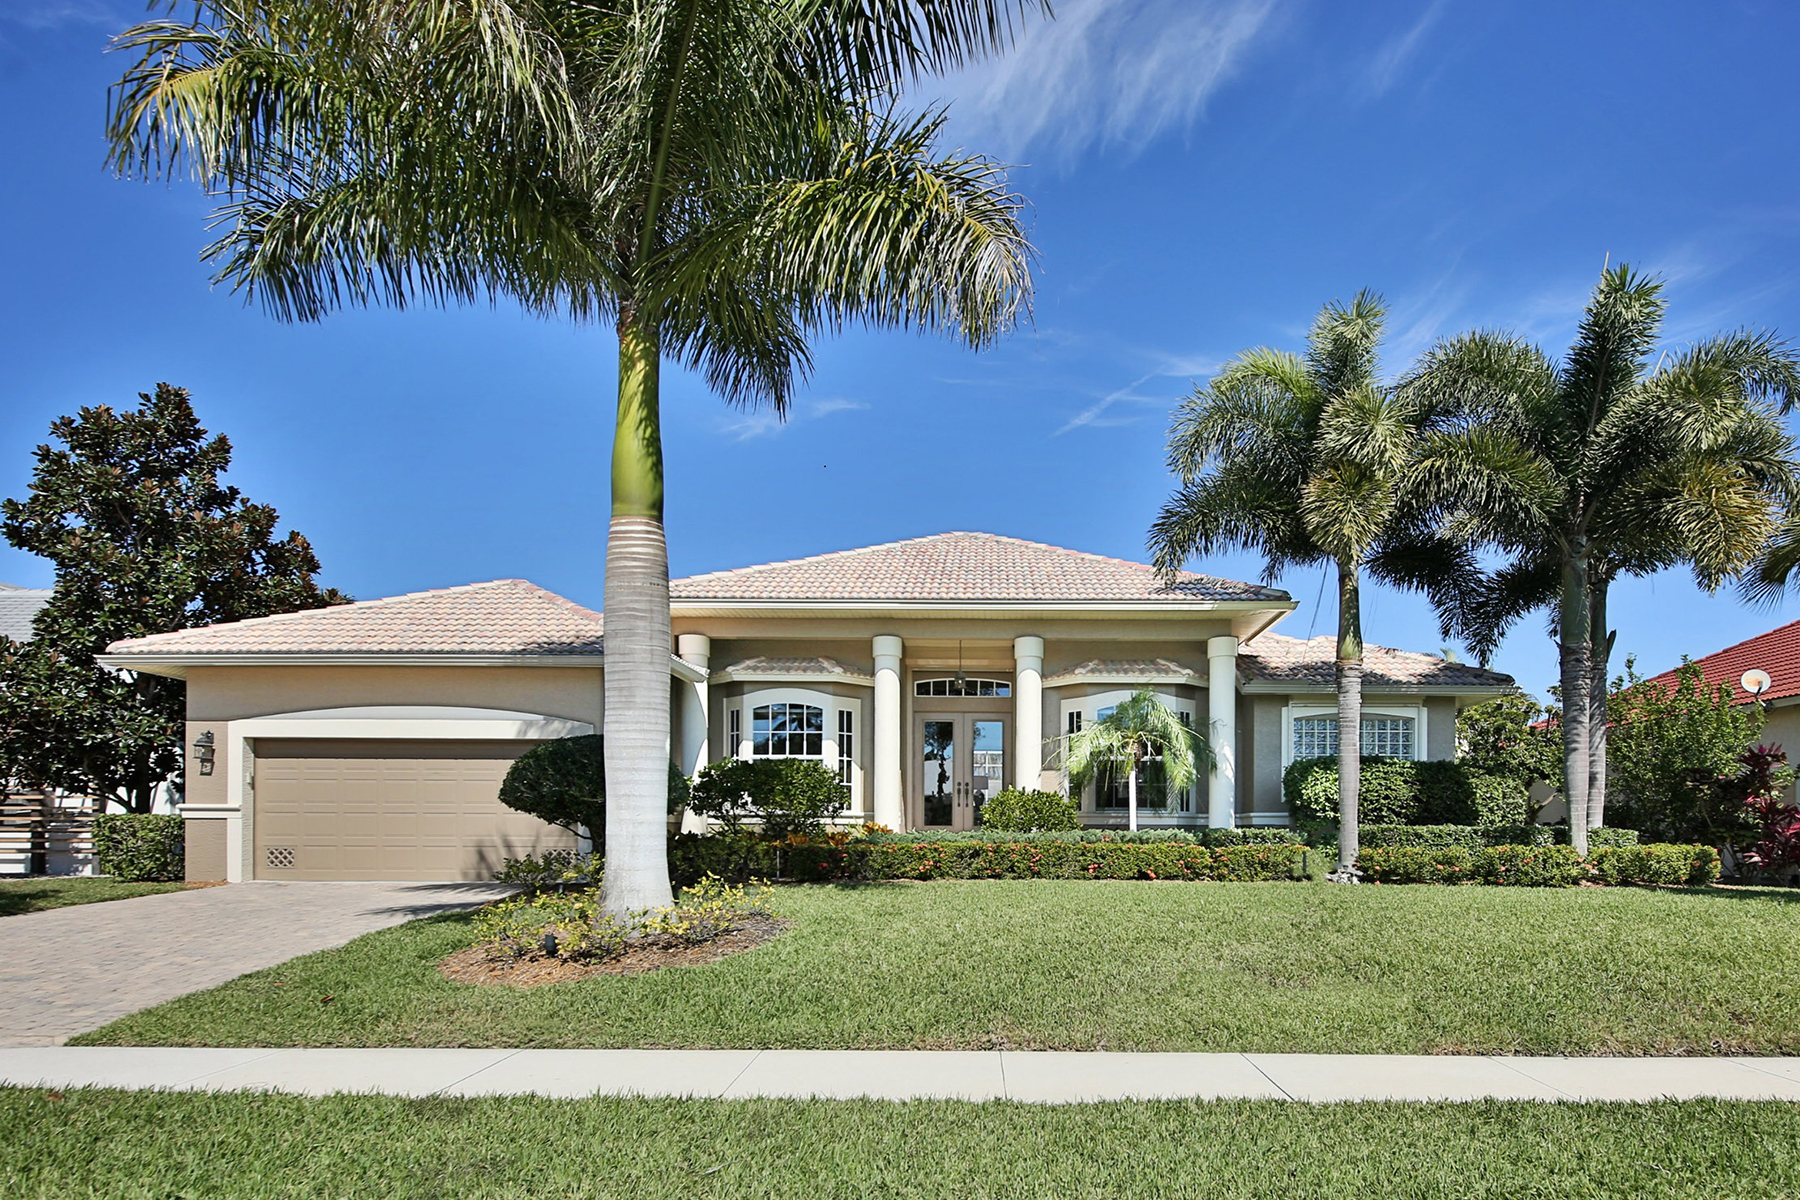 Single Family Home for Sale at MARCO ISLAND 1806 Menorca Ct, Marco Island, Florida 34145 United States